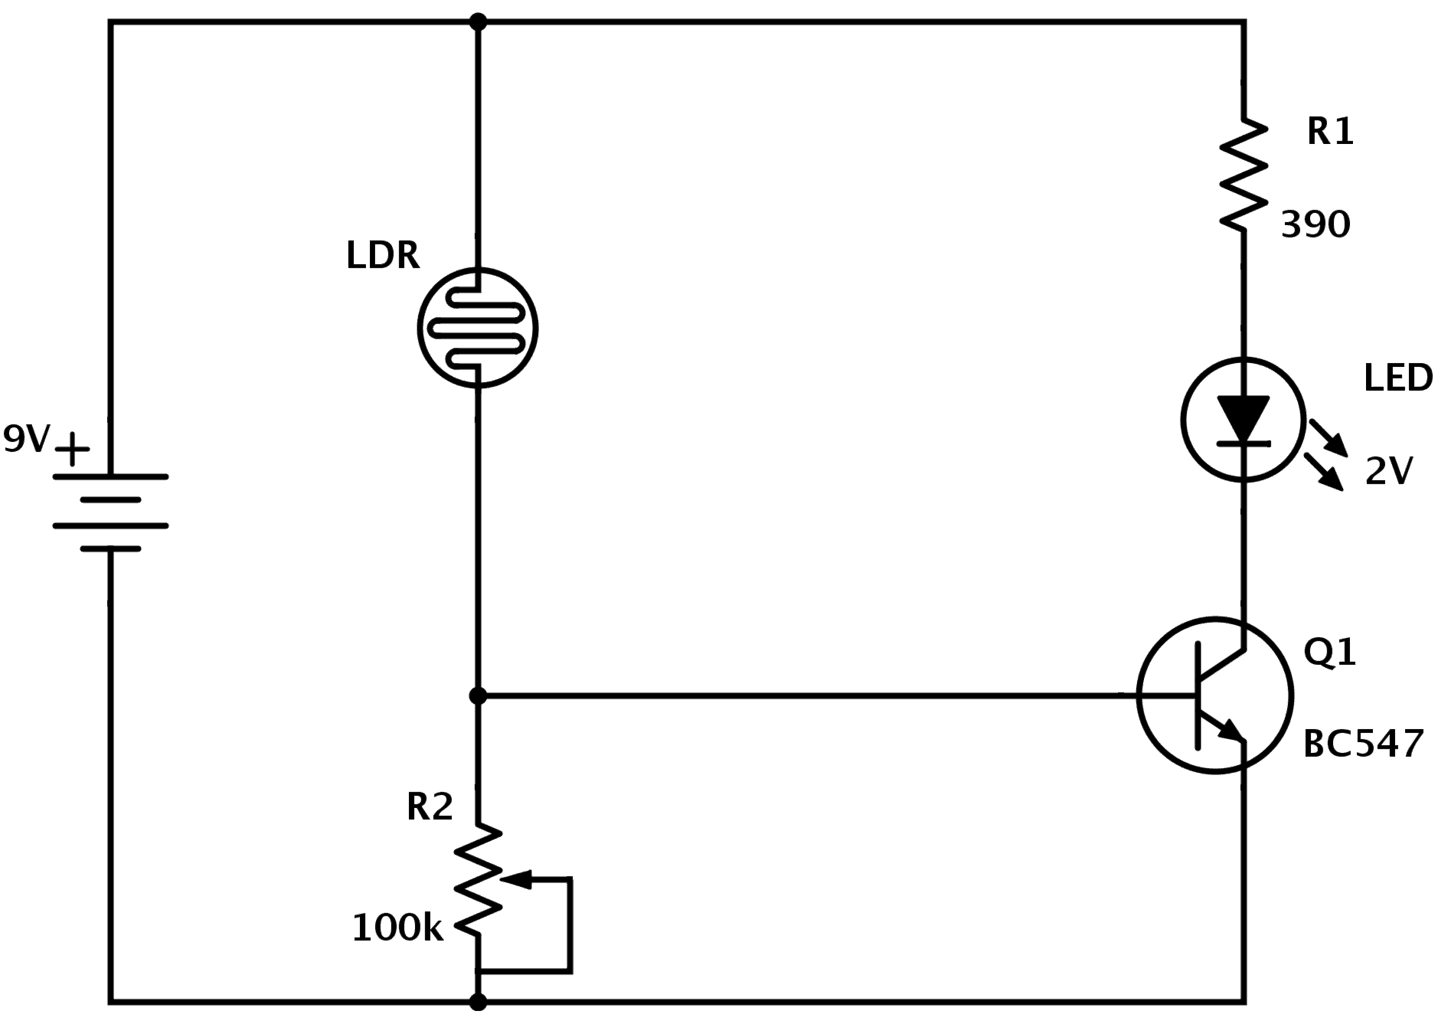 LDR circuit improved circuit diagram how to read and understand any schematic electronic circuit diagrams at nearapp.co